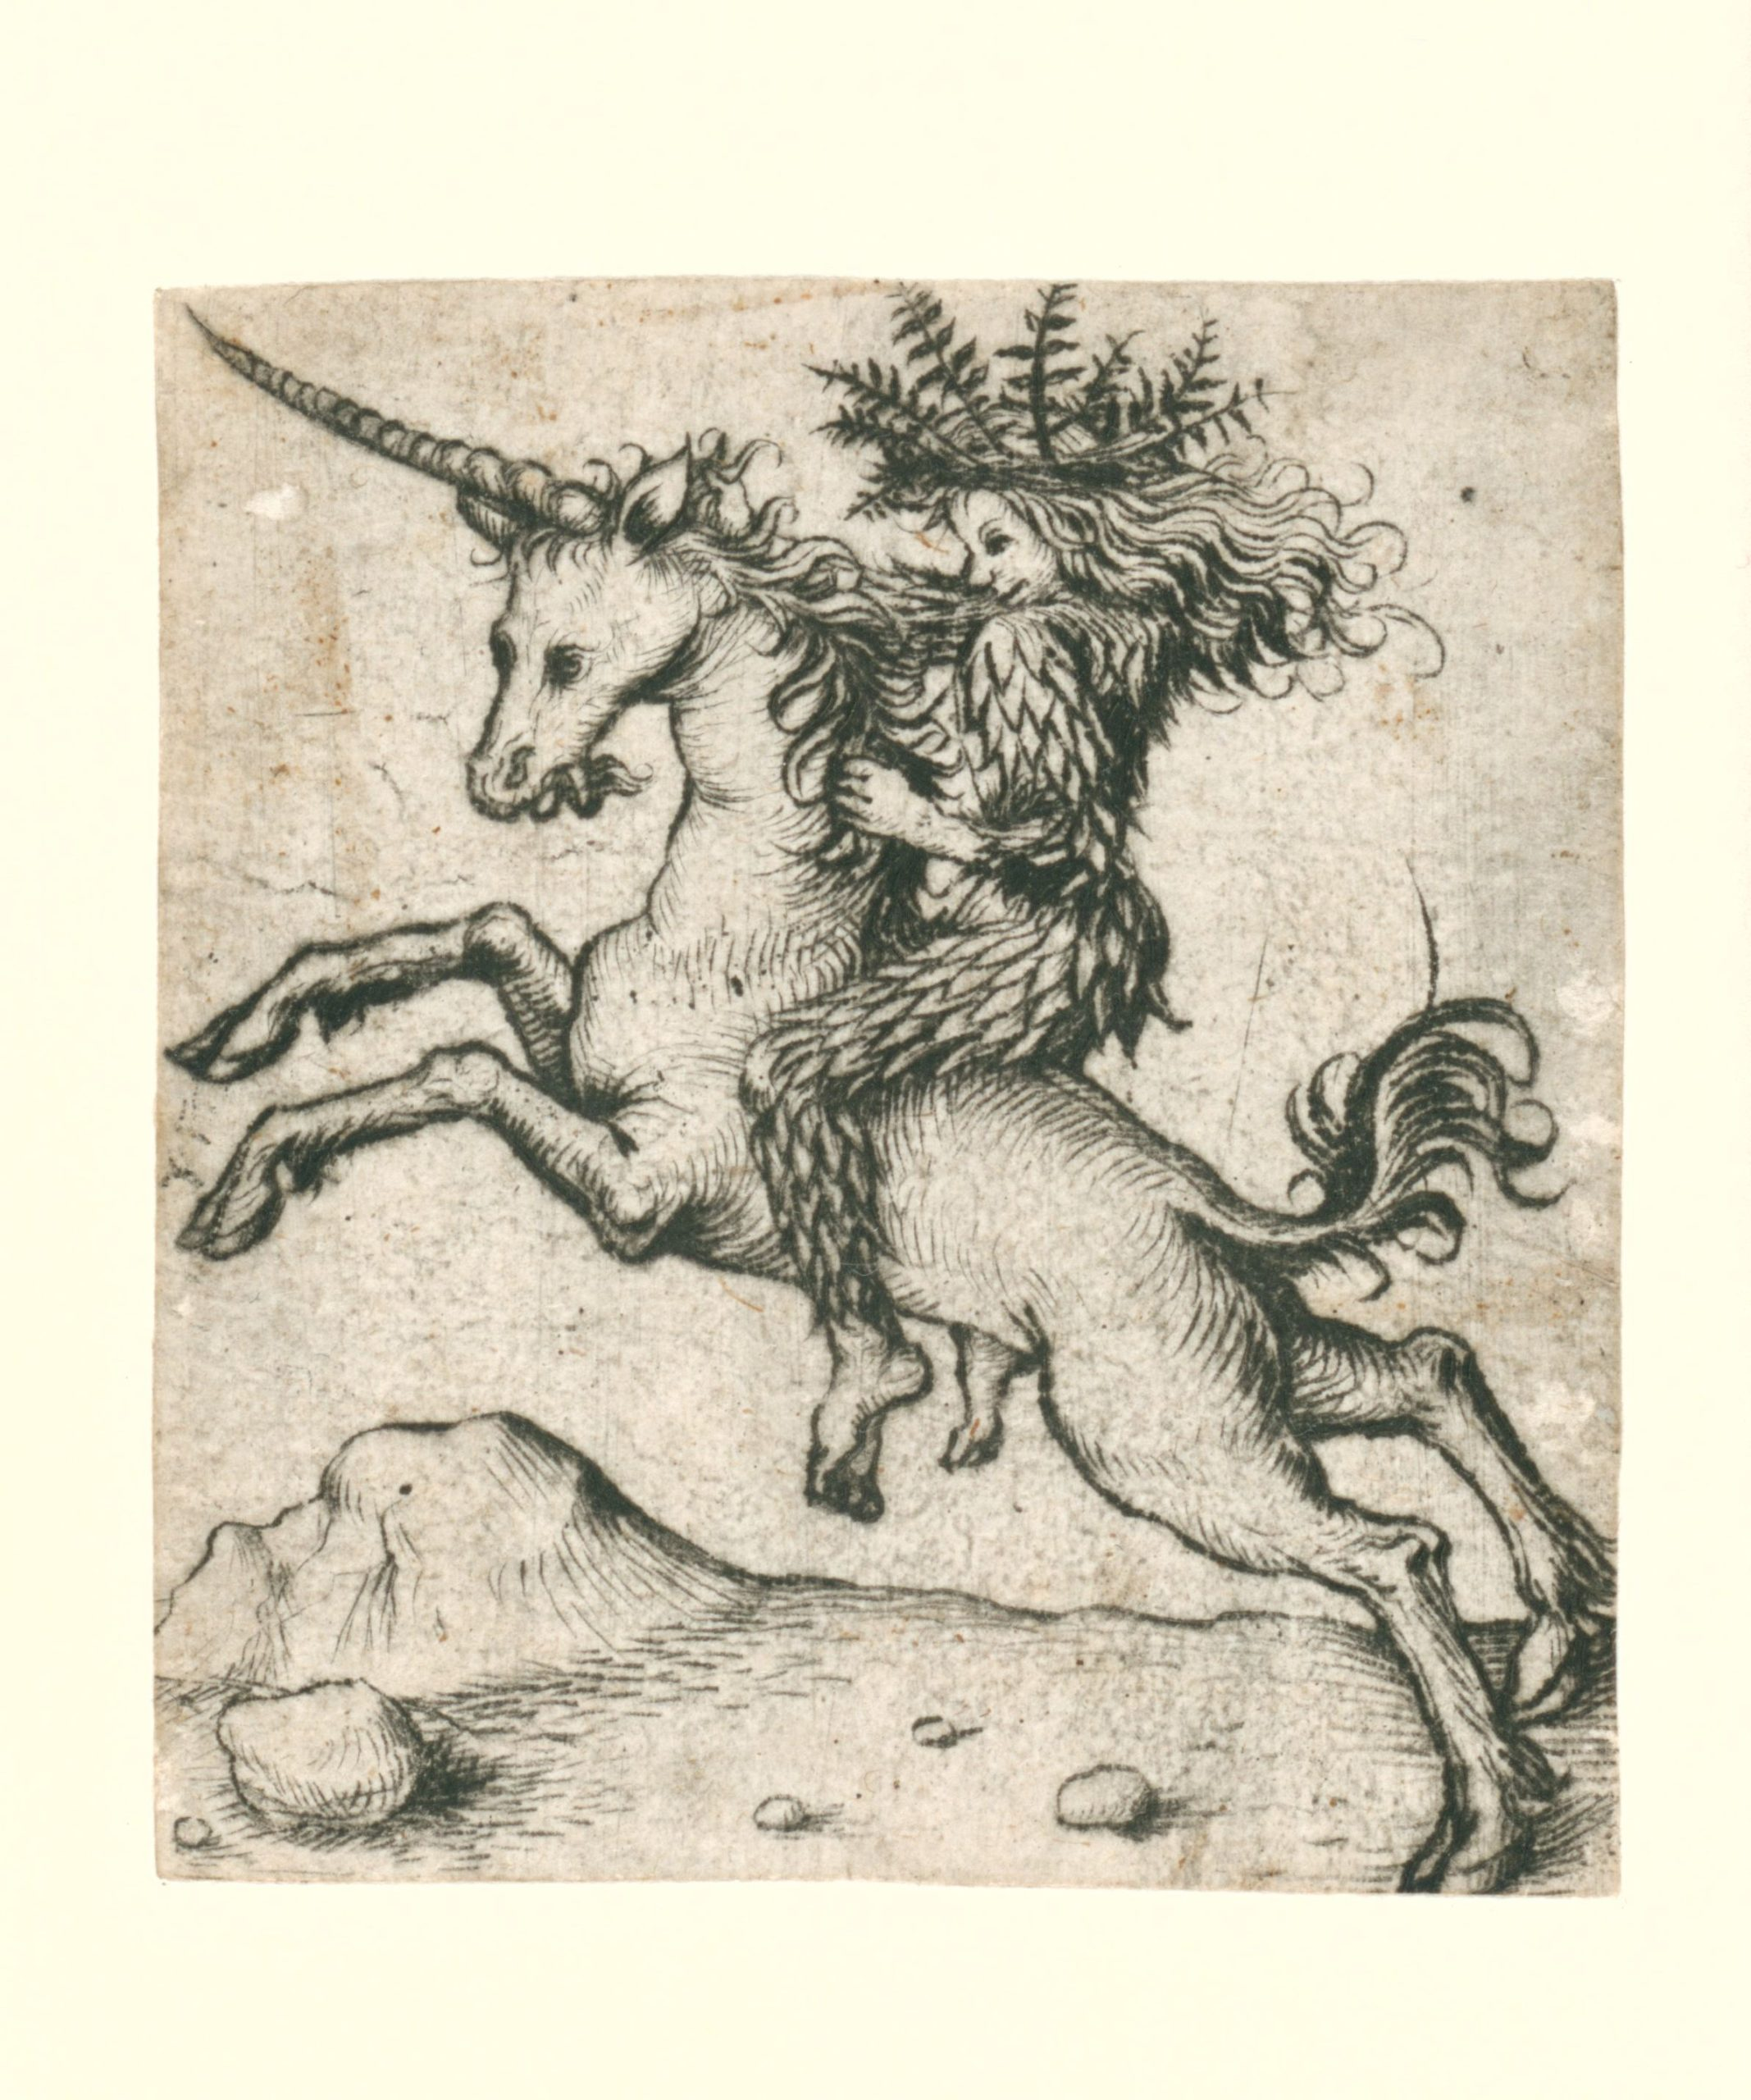 COMPARANDUM: Wild woman on a unicorn, 1473 - 1477, Master of the Amsterdam Cabinet, Germany